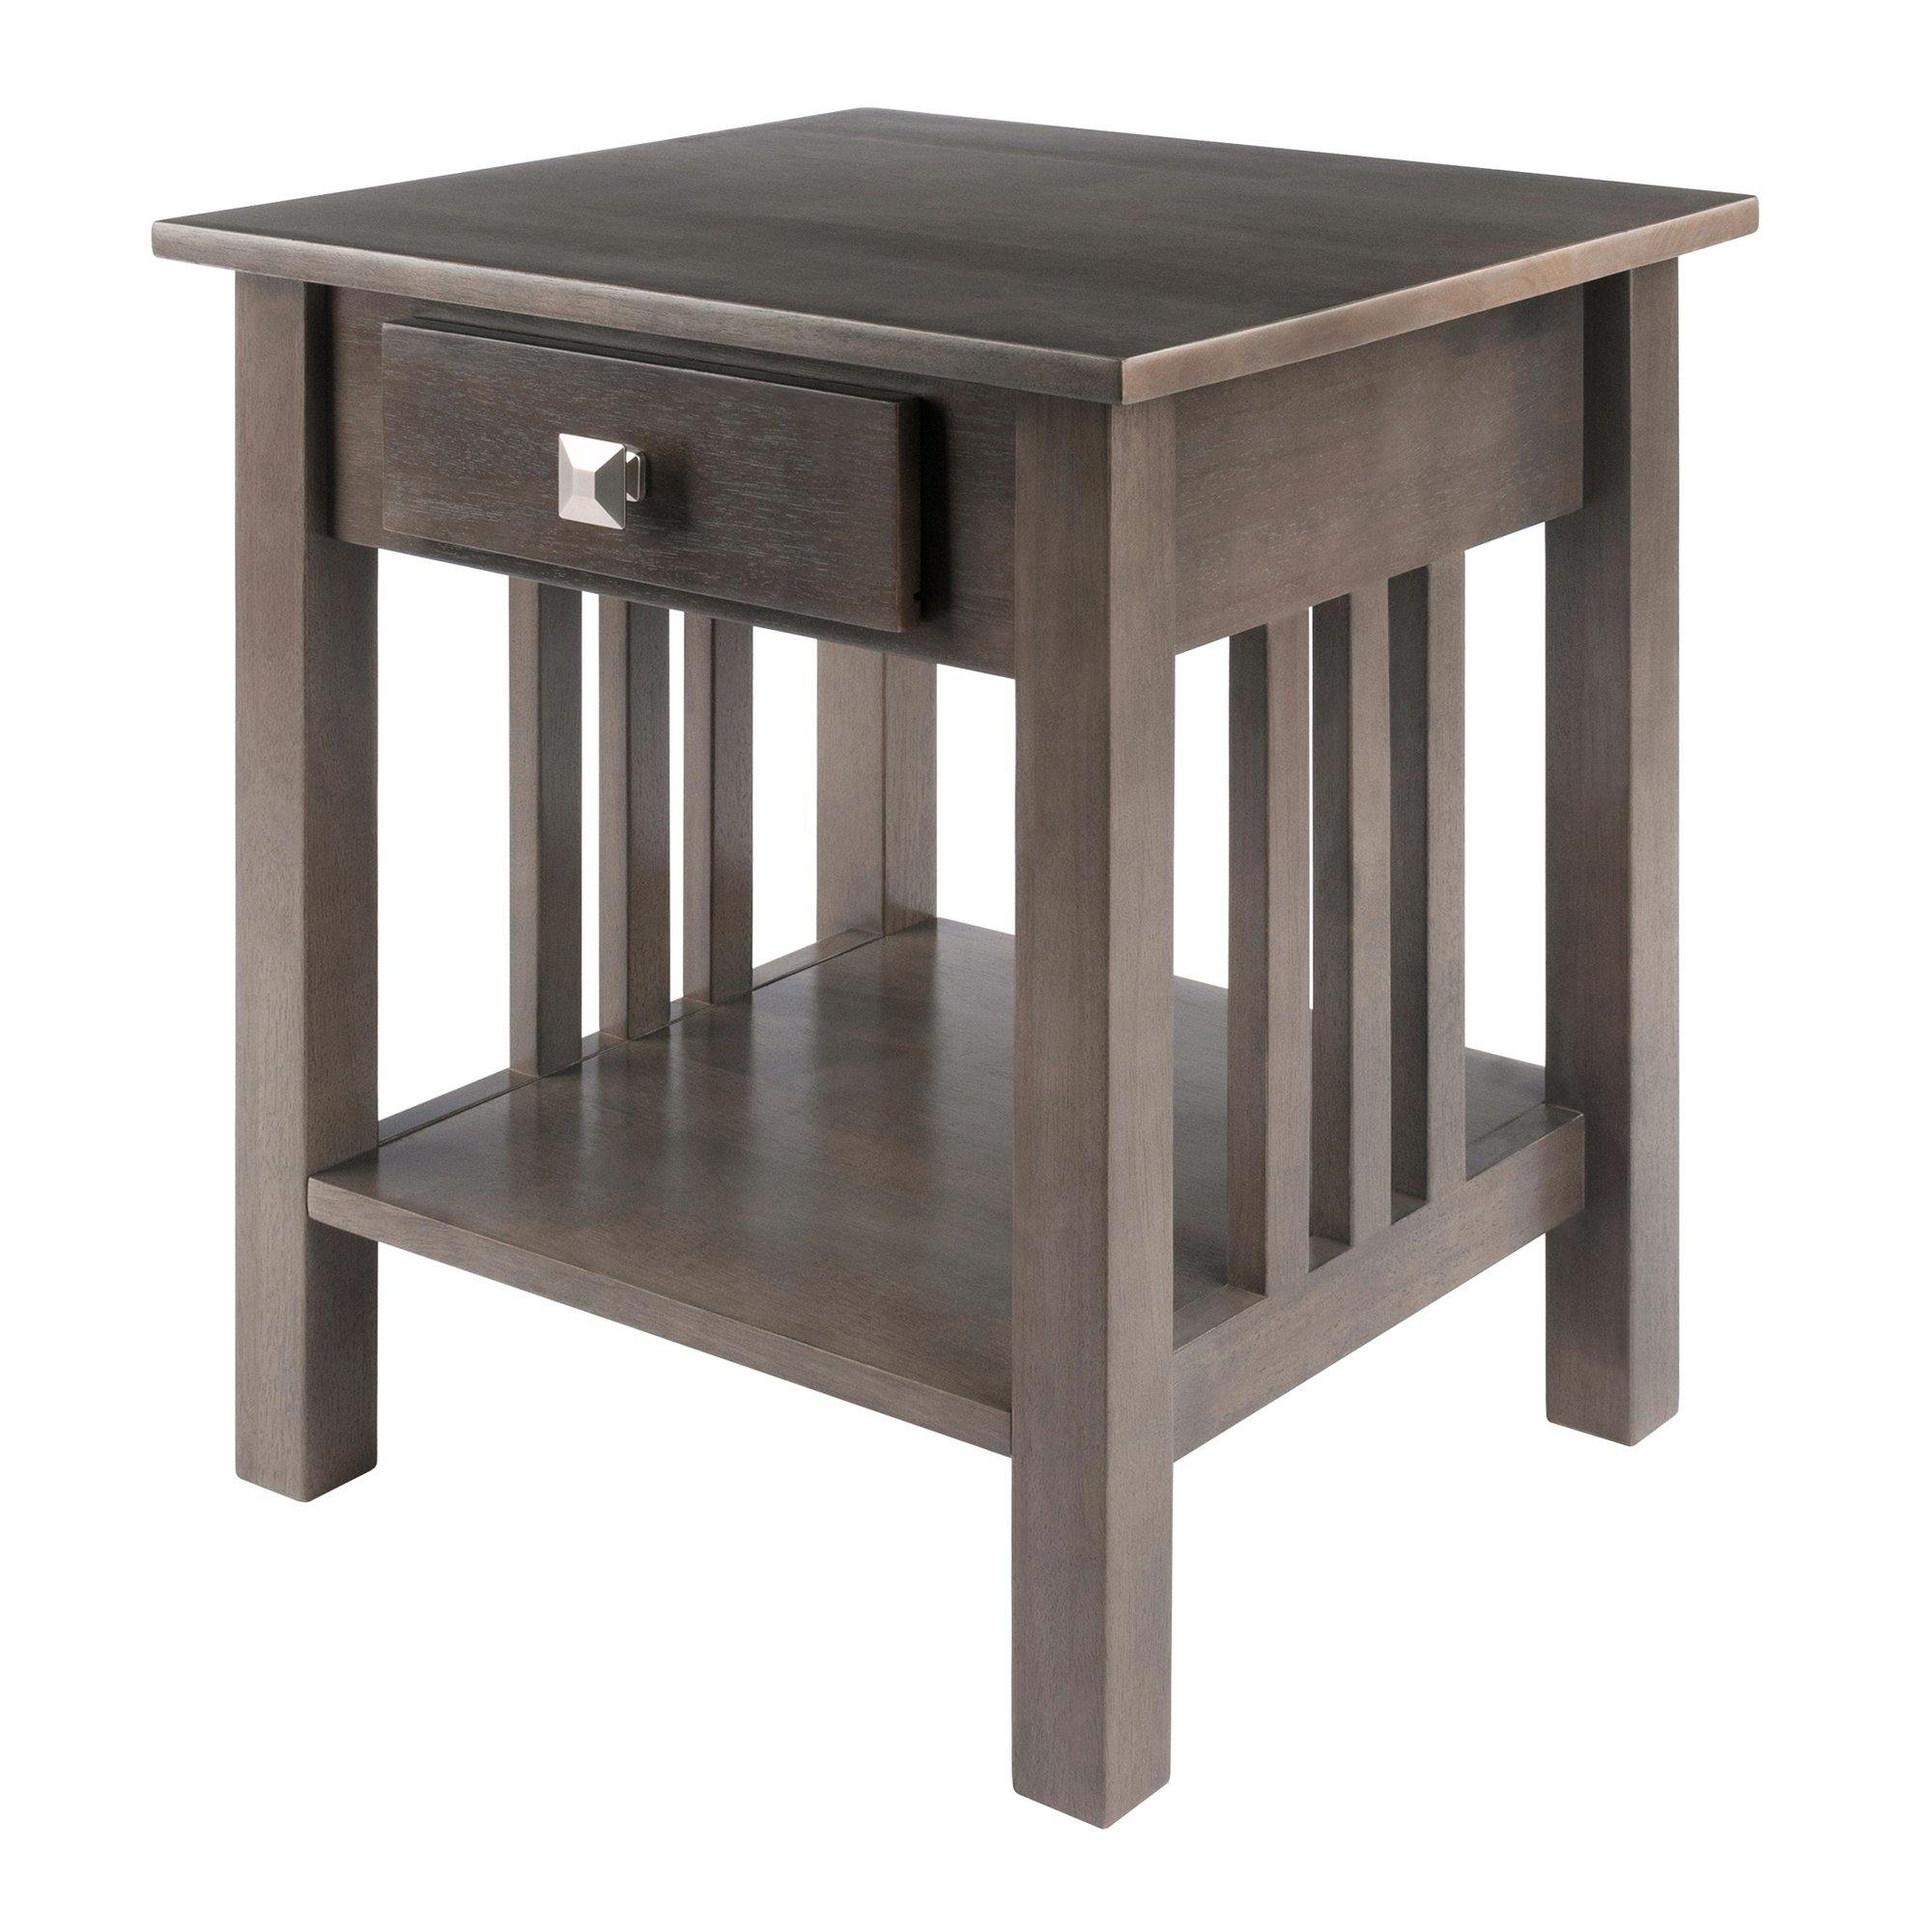 Stafford End Table, Oyster Gray - My USA Furniture